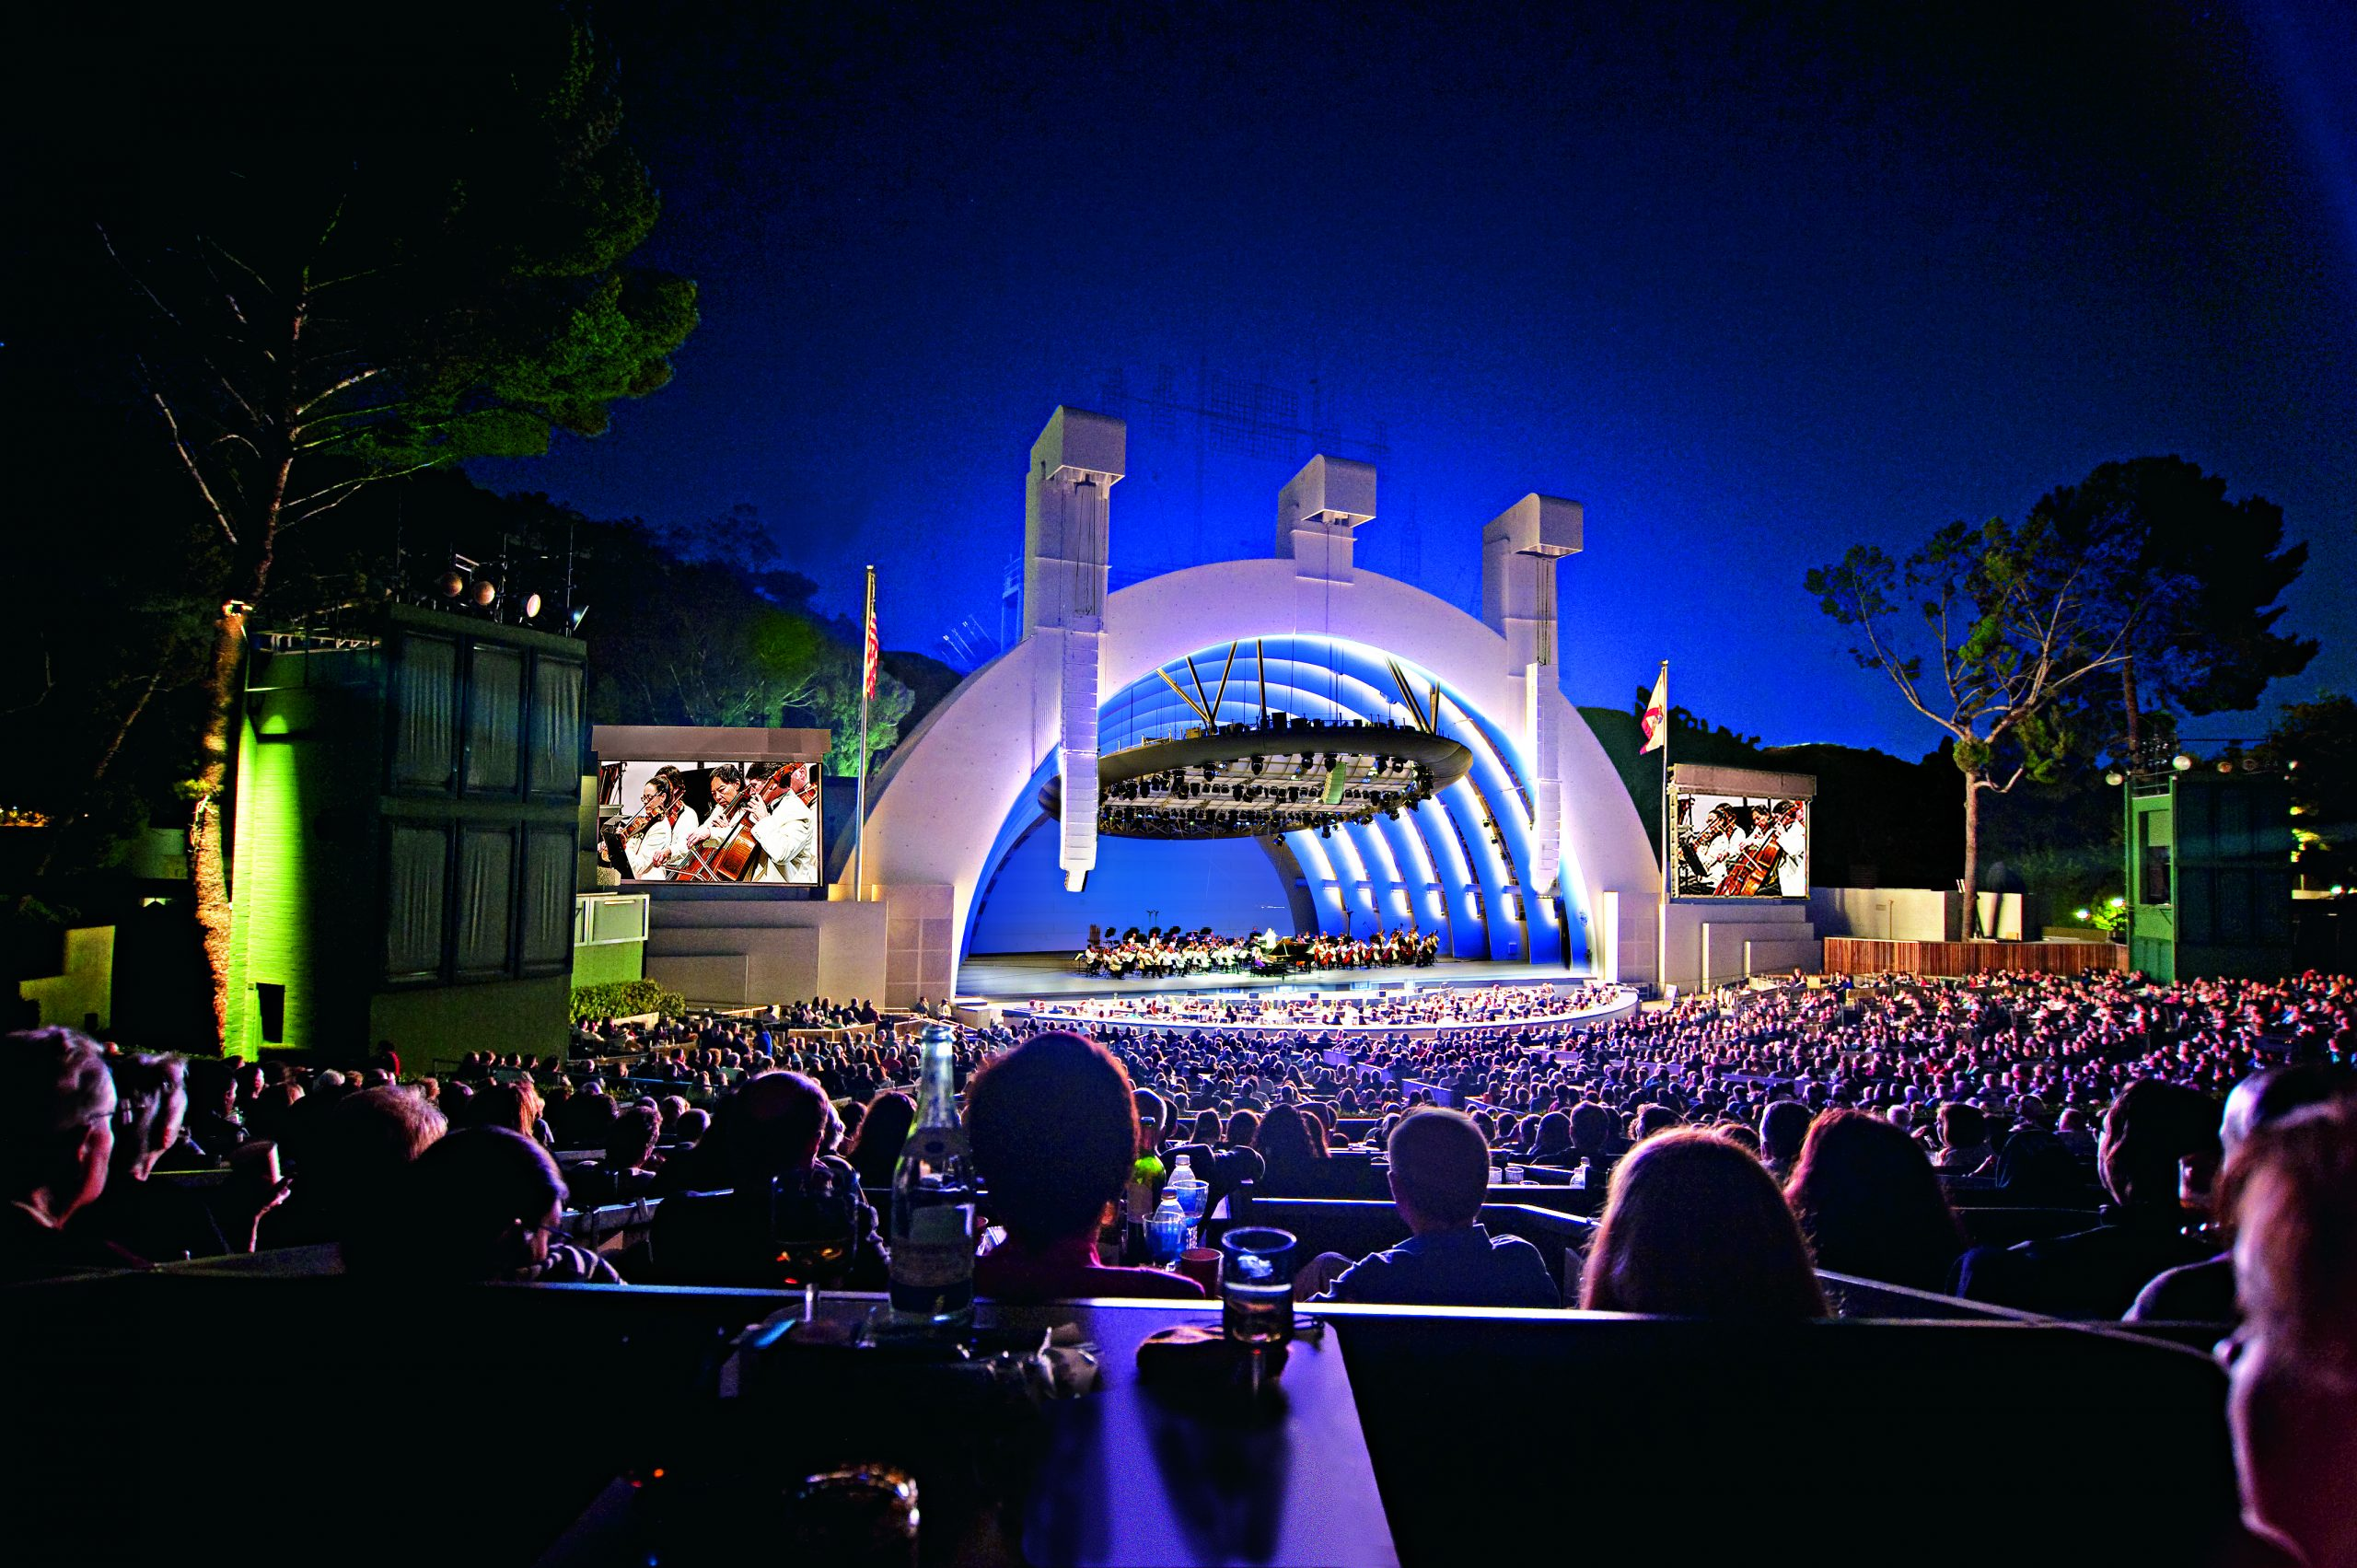 Hollywood Bowl Schedule 2020 | What's On at the Hollywood Bowl?